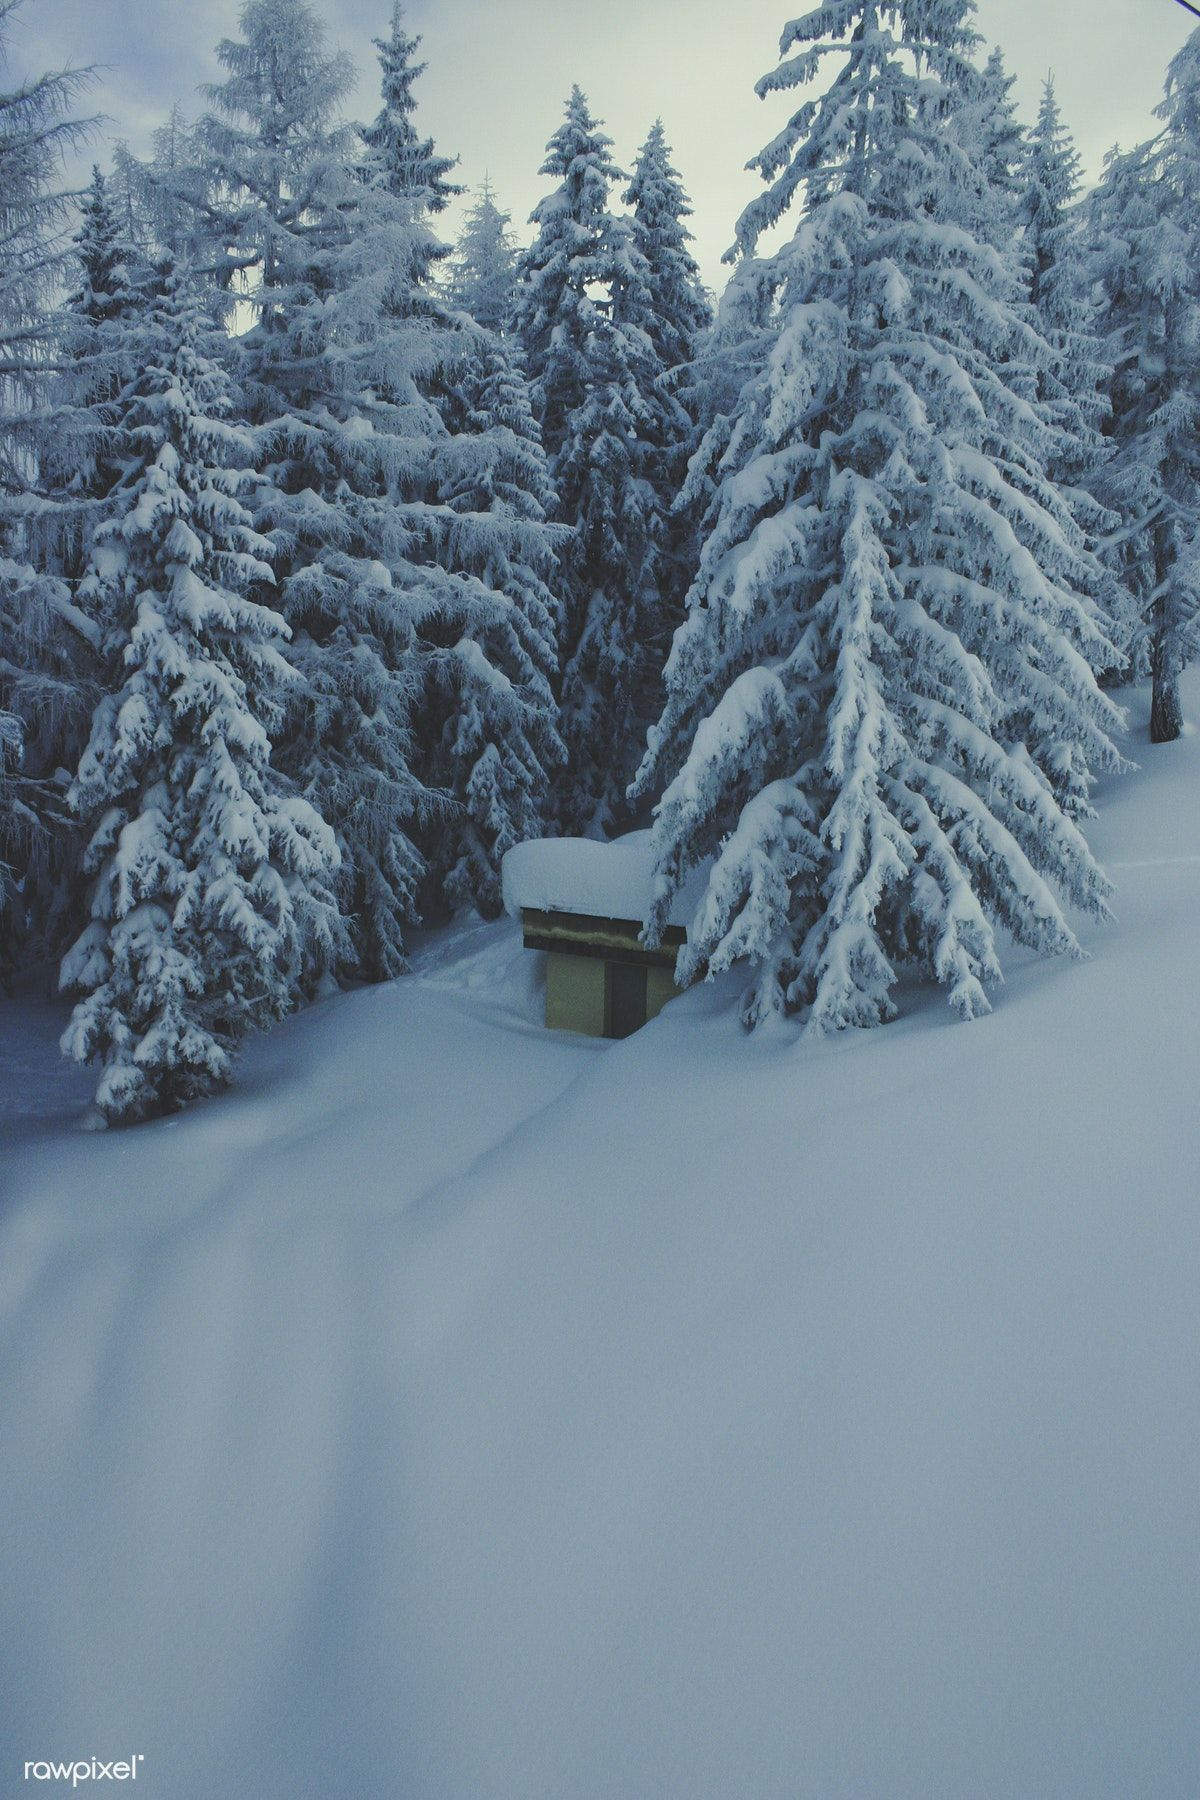 Winter Mountain Landscape In The Alps Free Image By Rawpixel Com Winter Mountain Winter Pictures Snowy Pictures